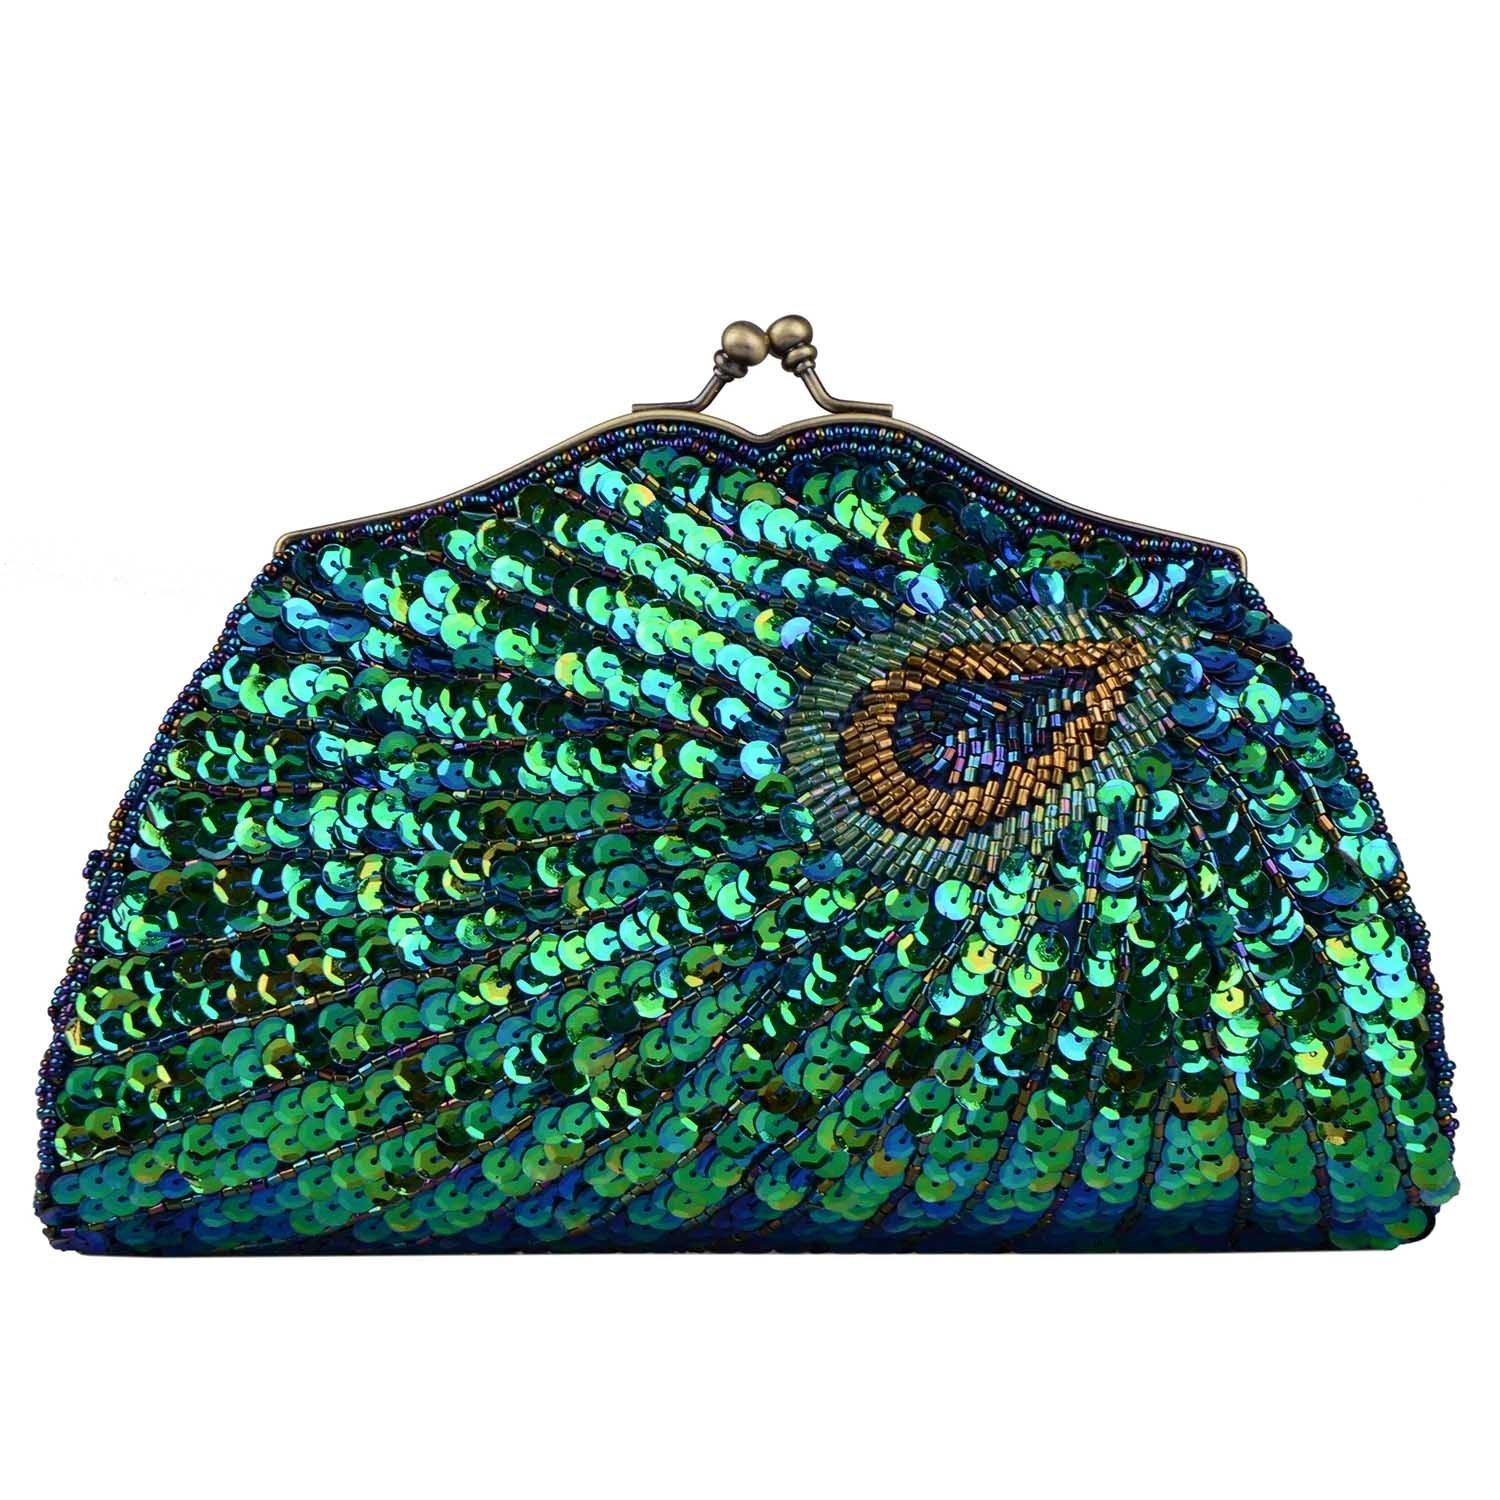 Women's Vintage Beaded Sequin Evening Bags and Clutches Peacock Purses Handbags